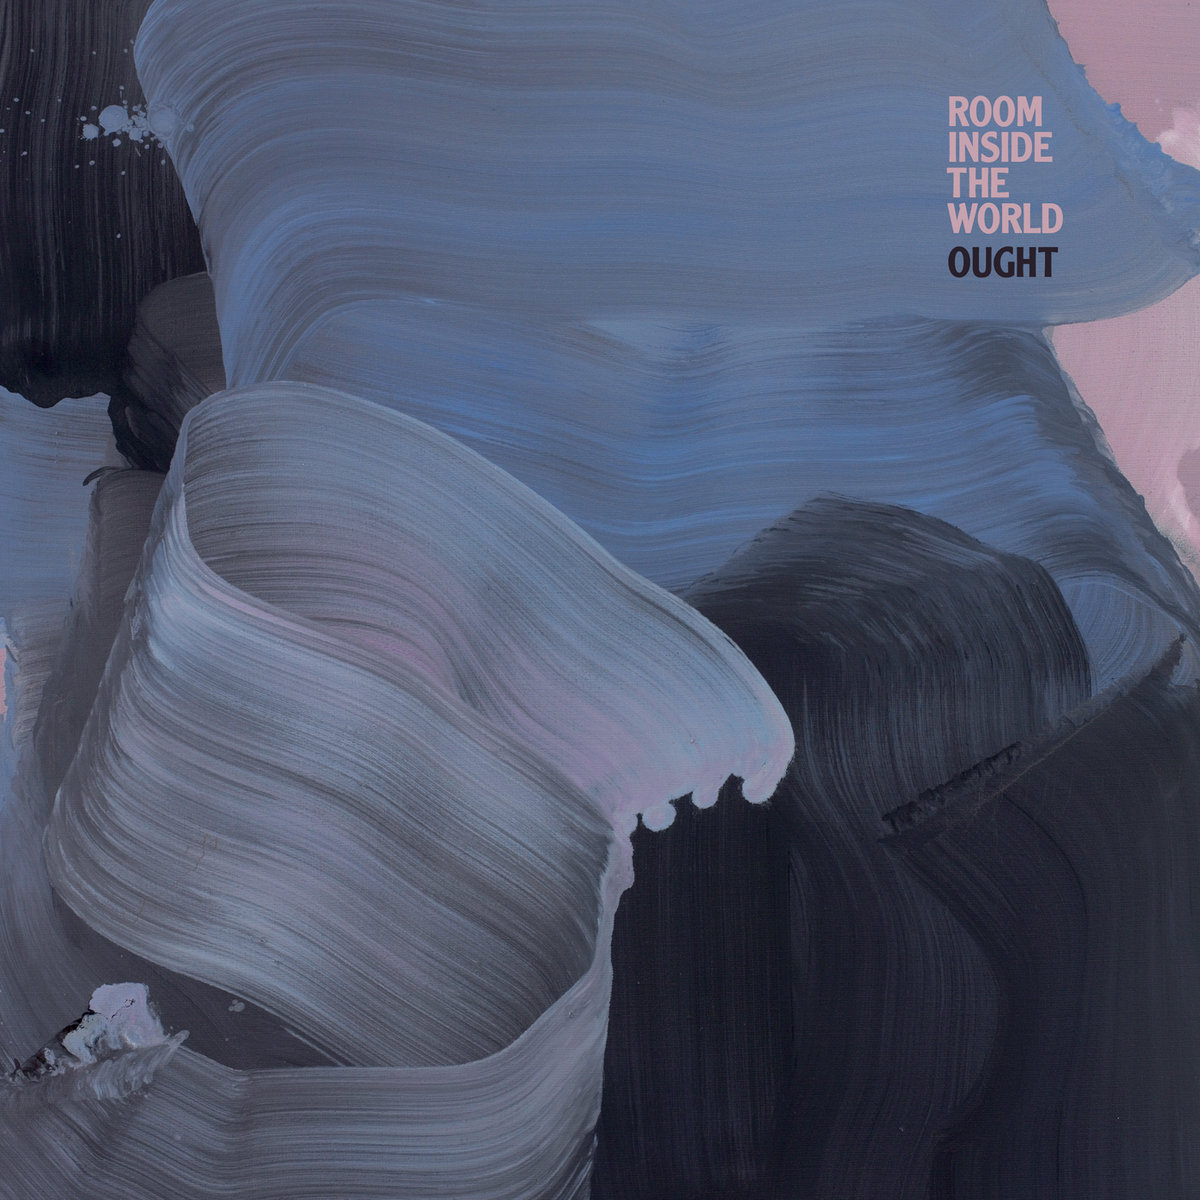 Northern Transmissions' review of 'Room Inside The World' by Ought